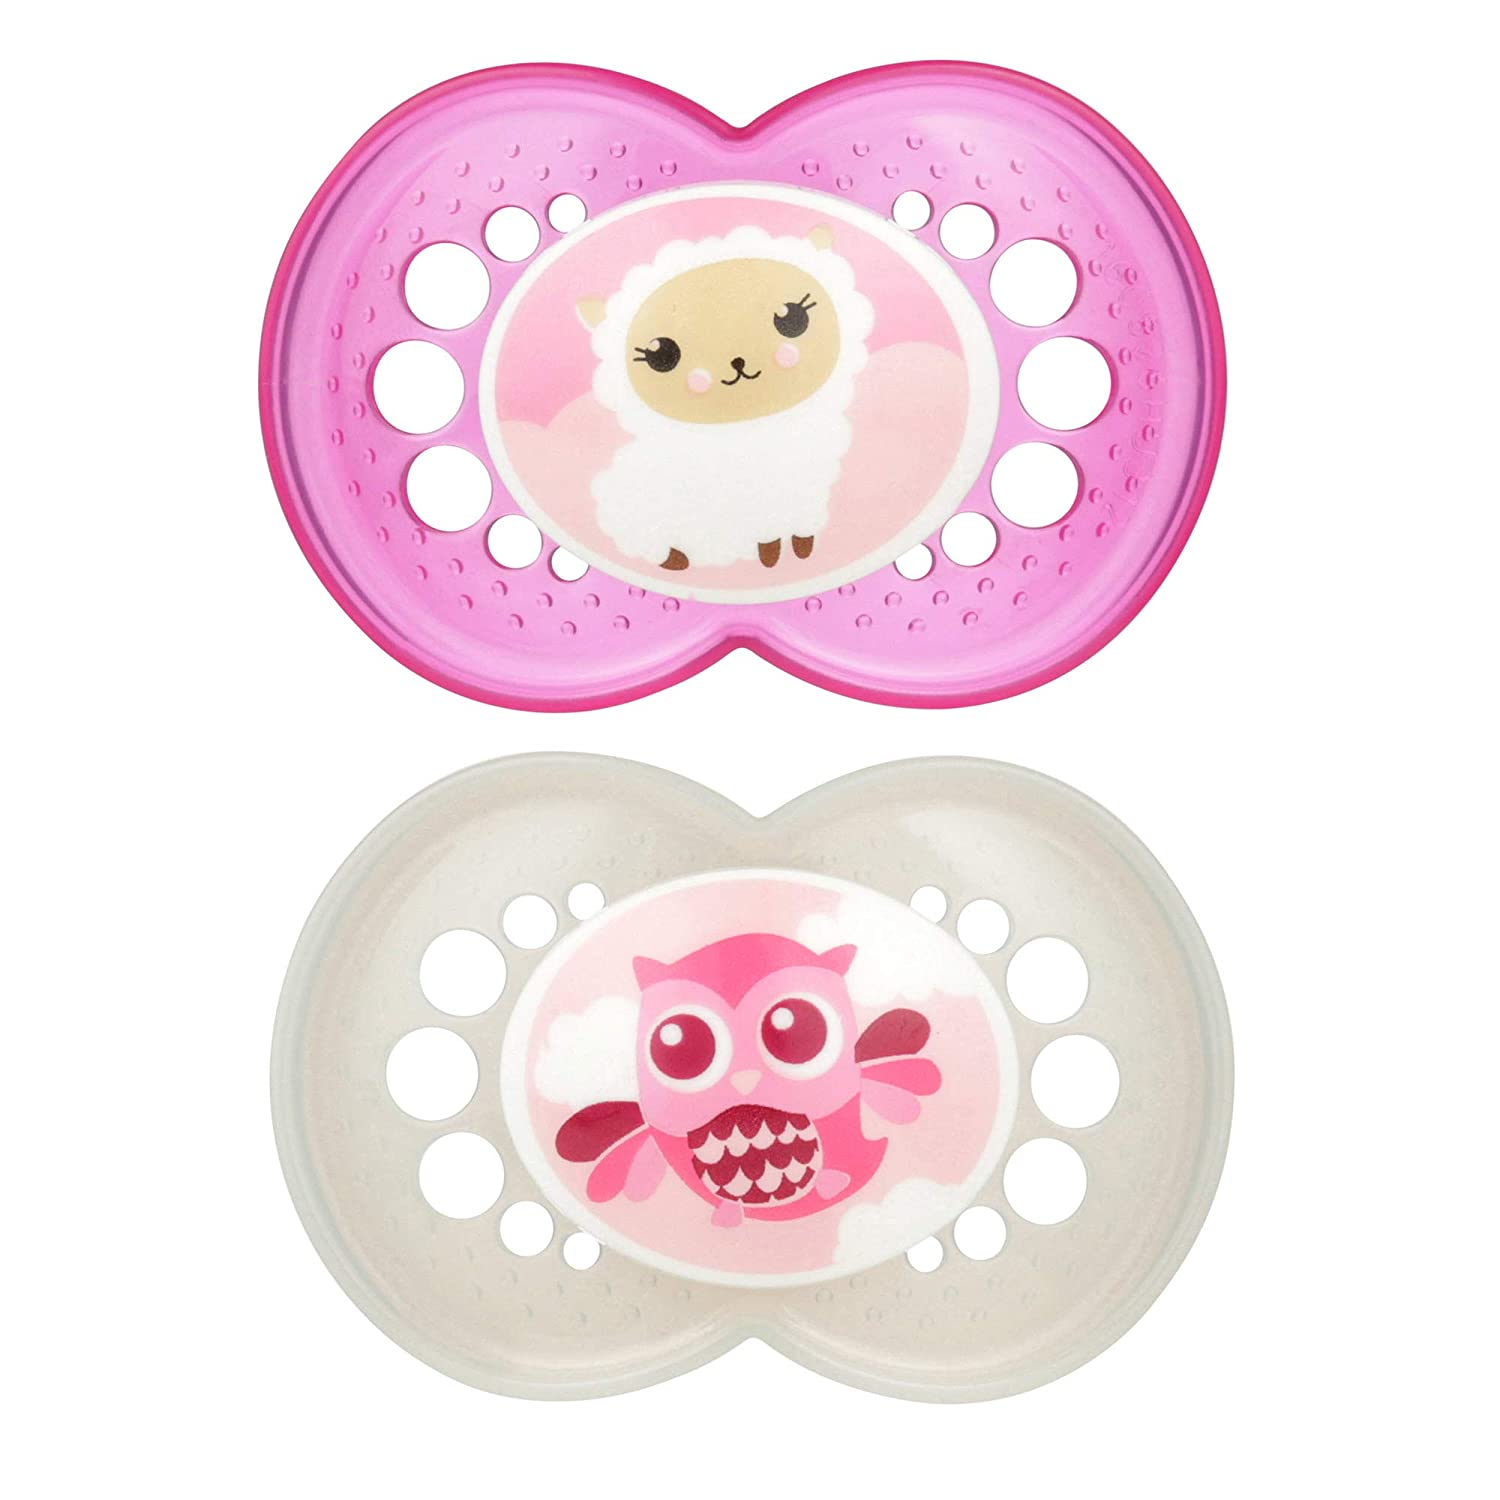 MAM Pacifiers, Baby Pacifier 16+ Months, Best Pacifier for Breastfed Babies, 'Animal' Design Collection, Girl, 2-Count 3614-012-0-1